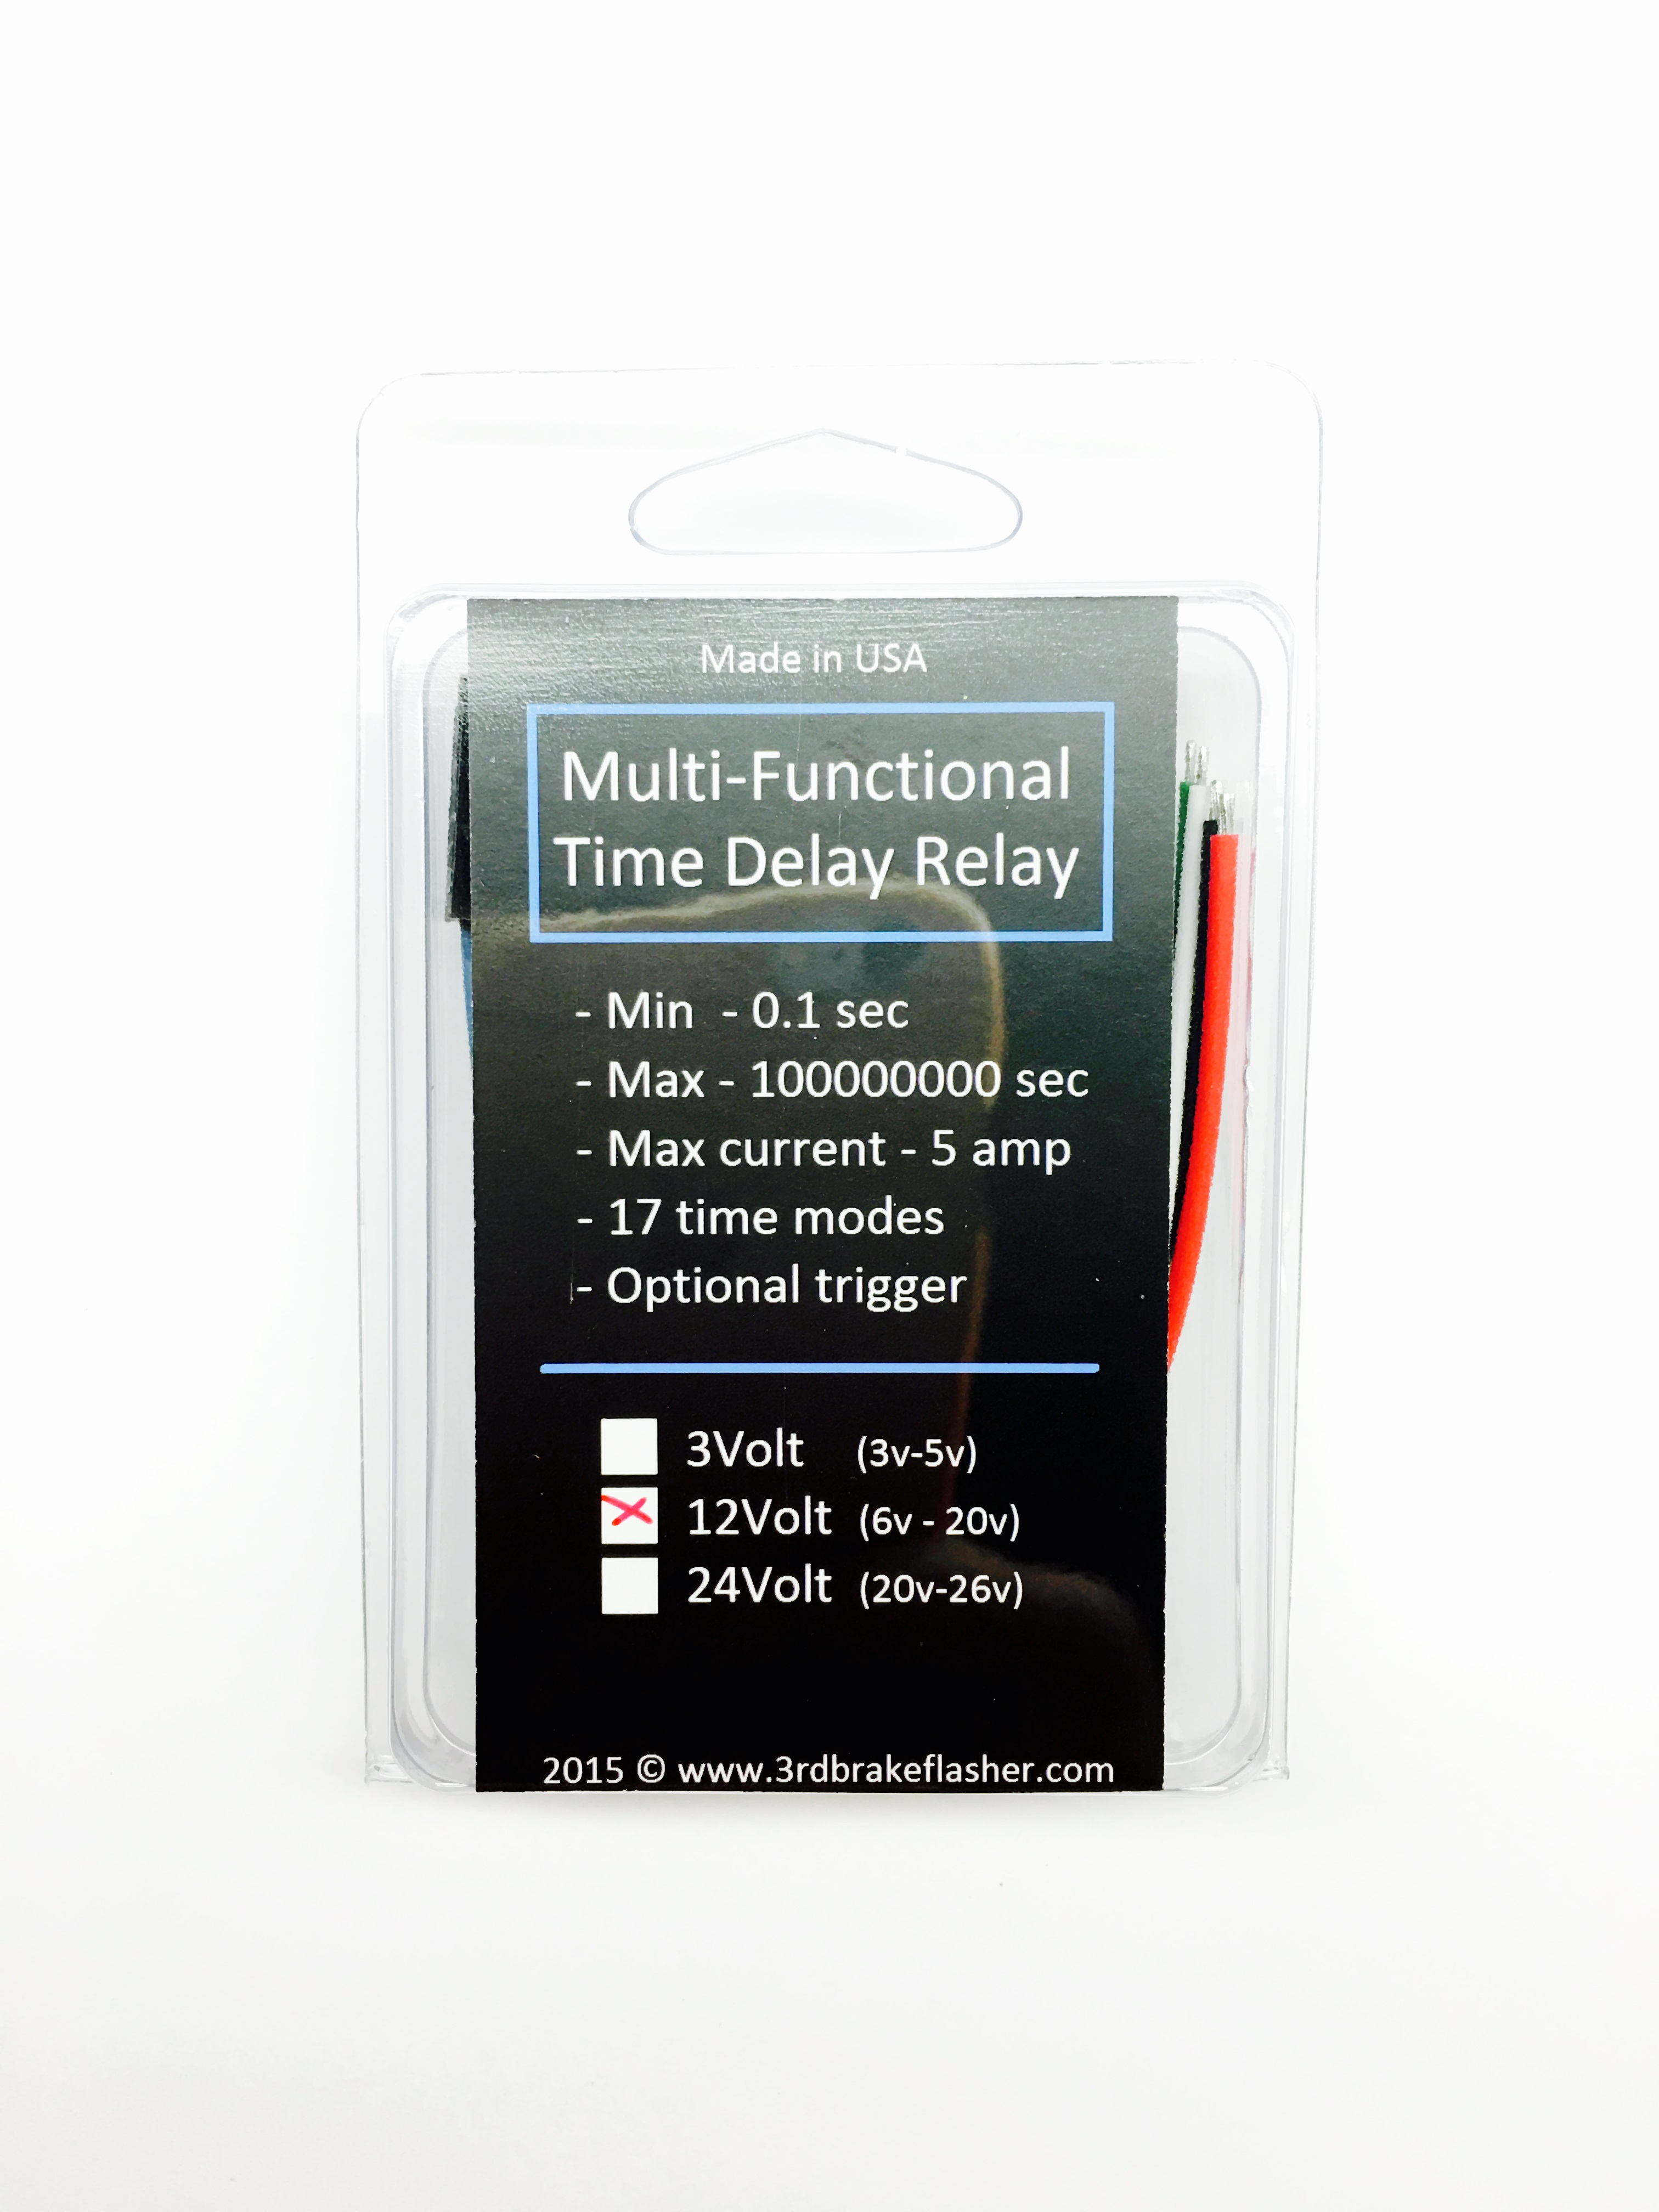 Multifunctional Timer Off Delay Timer Relay At 3rd Brake